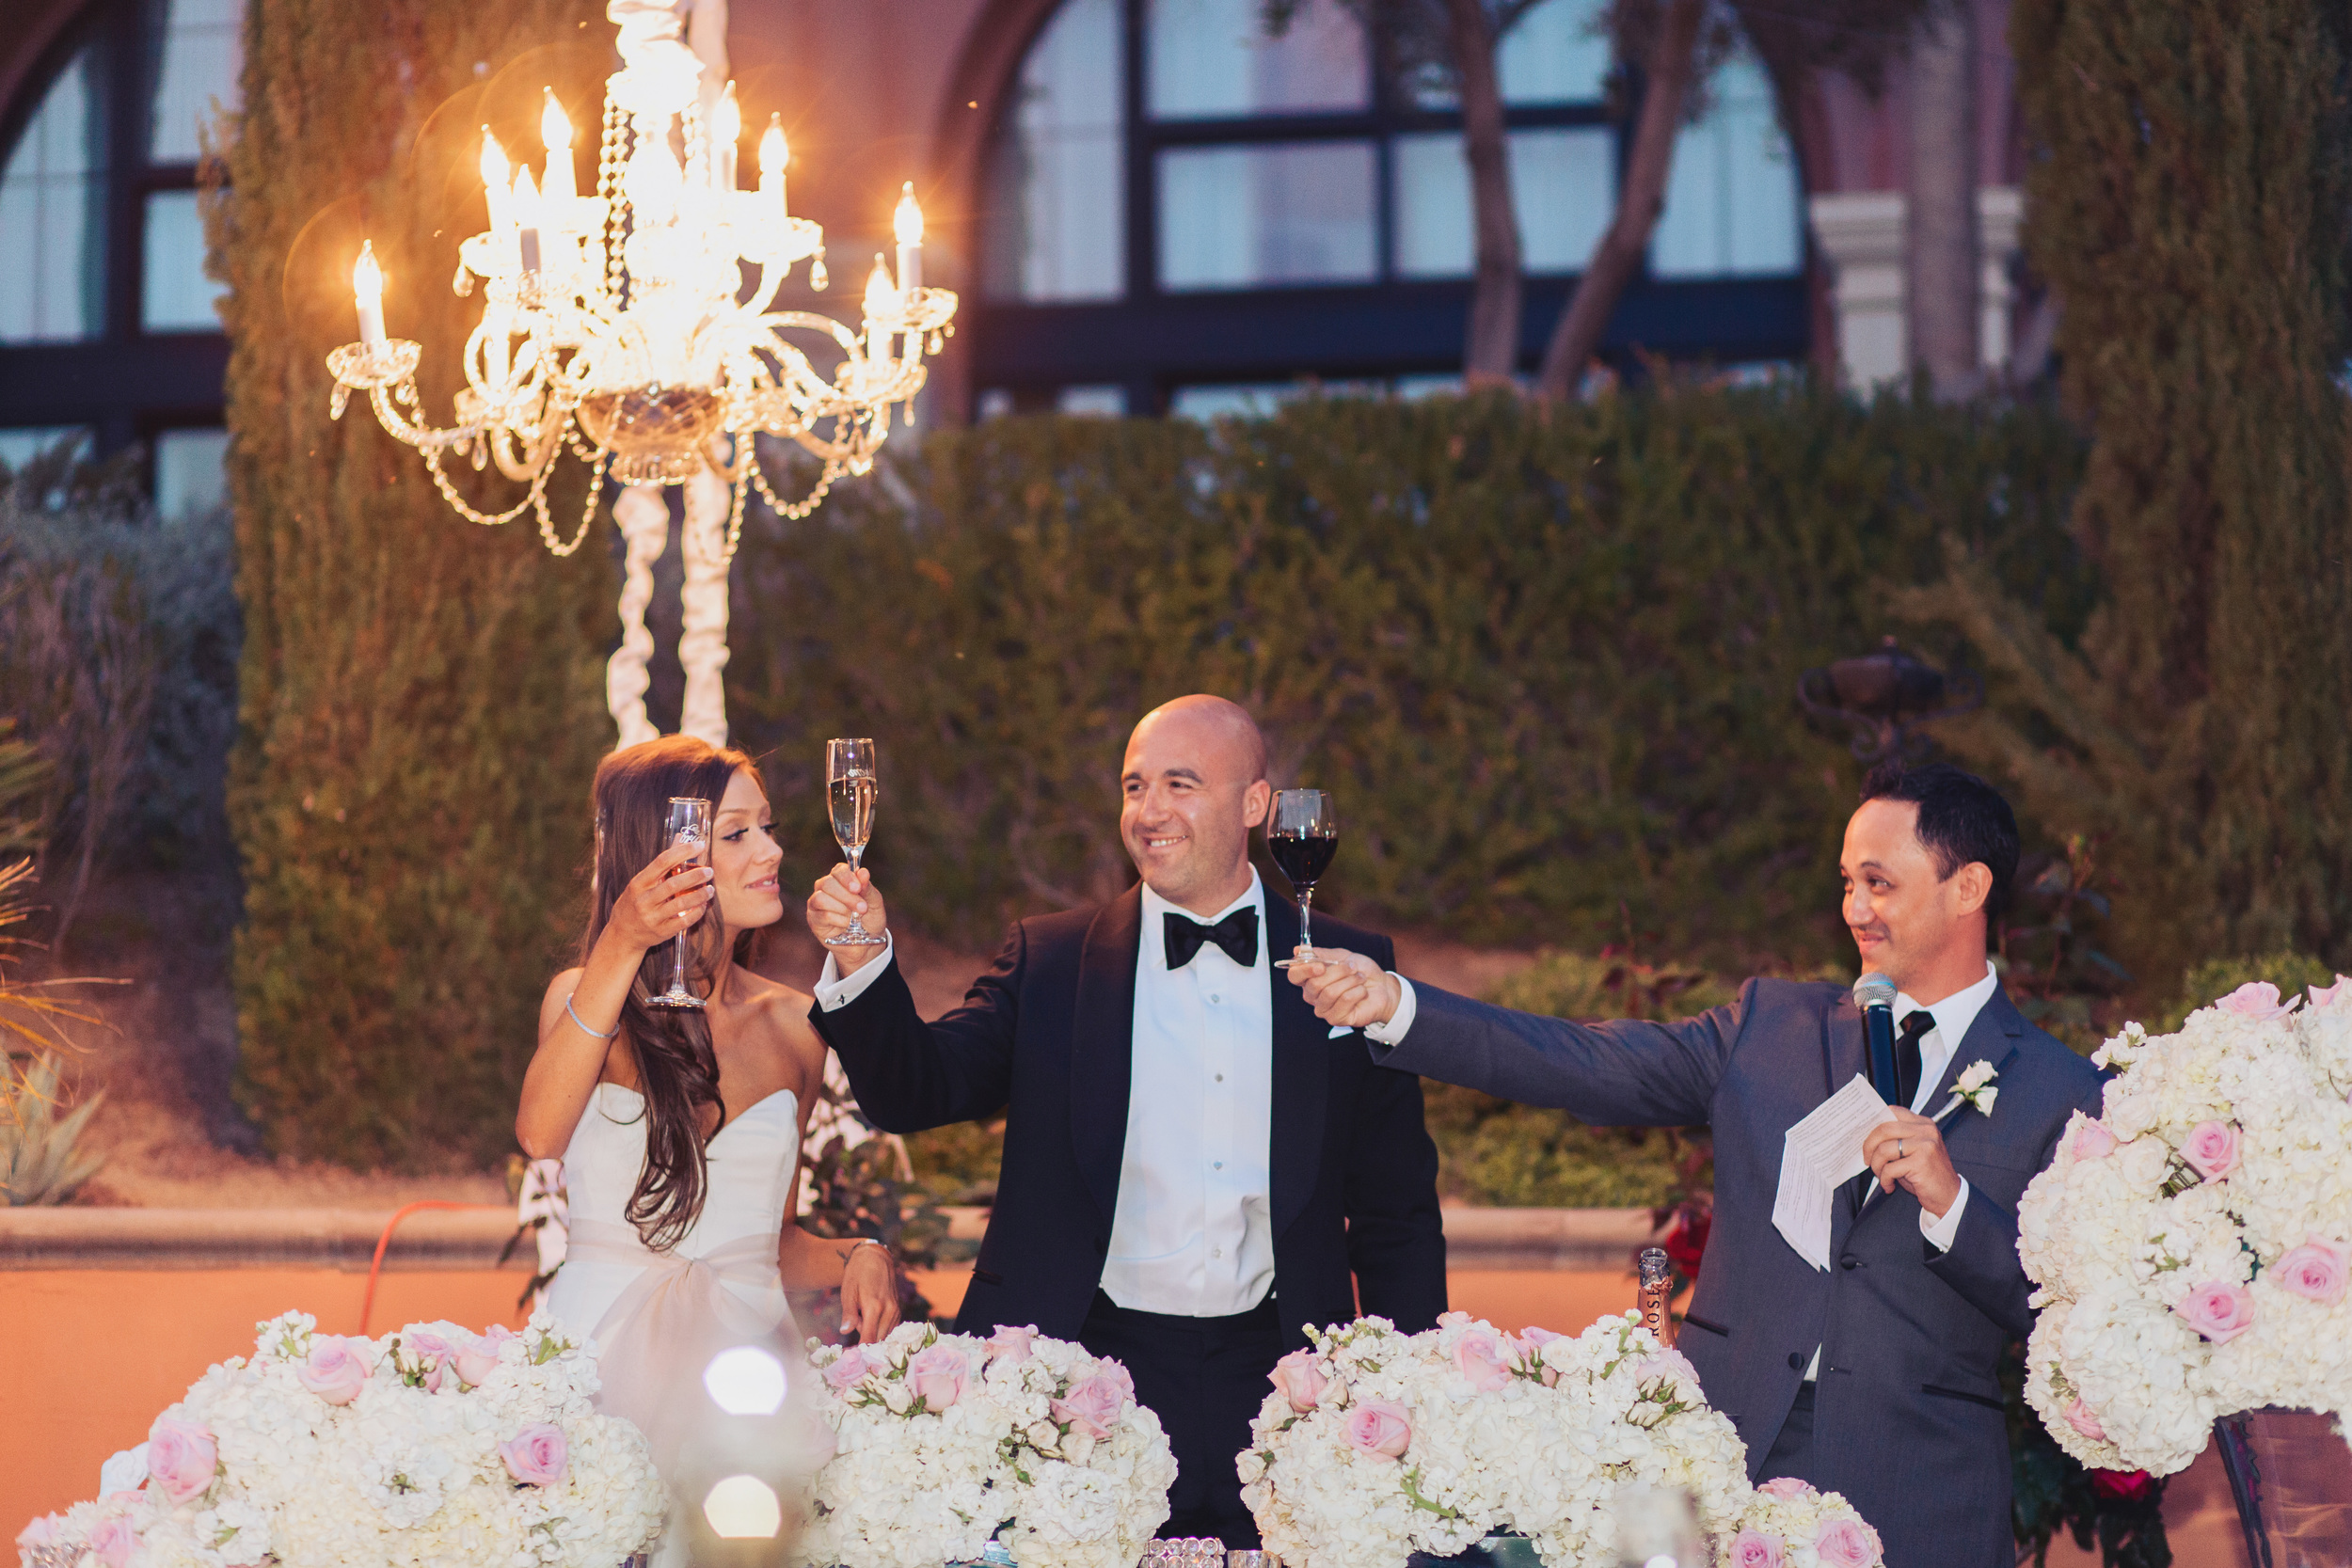 A toast to the bride and groom by the best man.  Stephanie Di Lallo married  Justin Oliver at a water front  wedding at The Westin Lake Las Vegas.     Las Vegas Wedding Planner Andrea Eppolito   Wedding at Lake Las Vegas   White and Blu  sh and Grey Wedding   Luxury Wedding Las Vegas